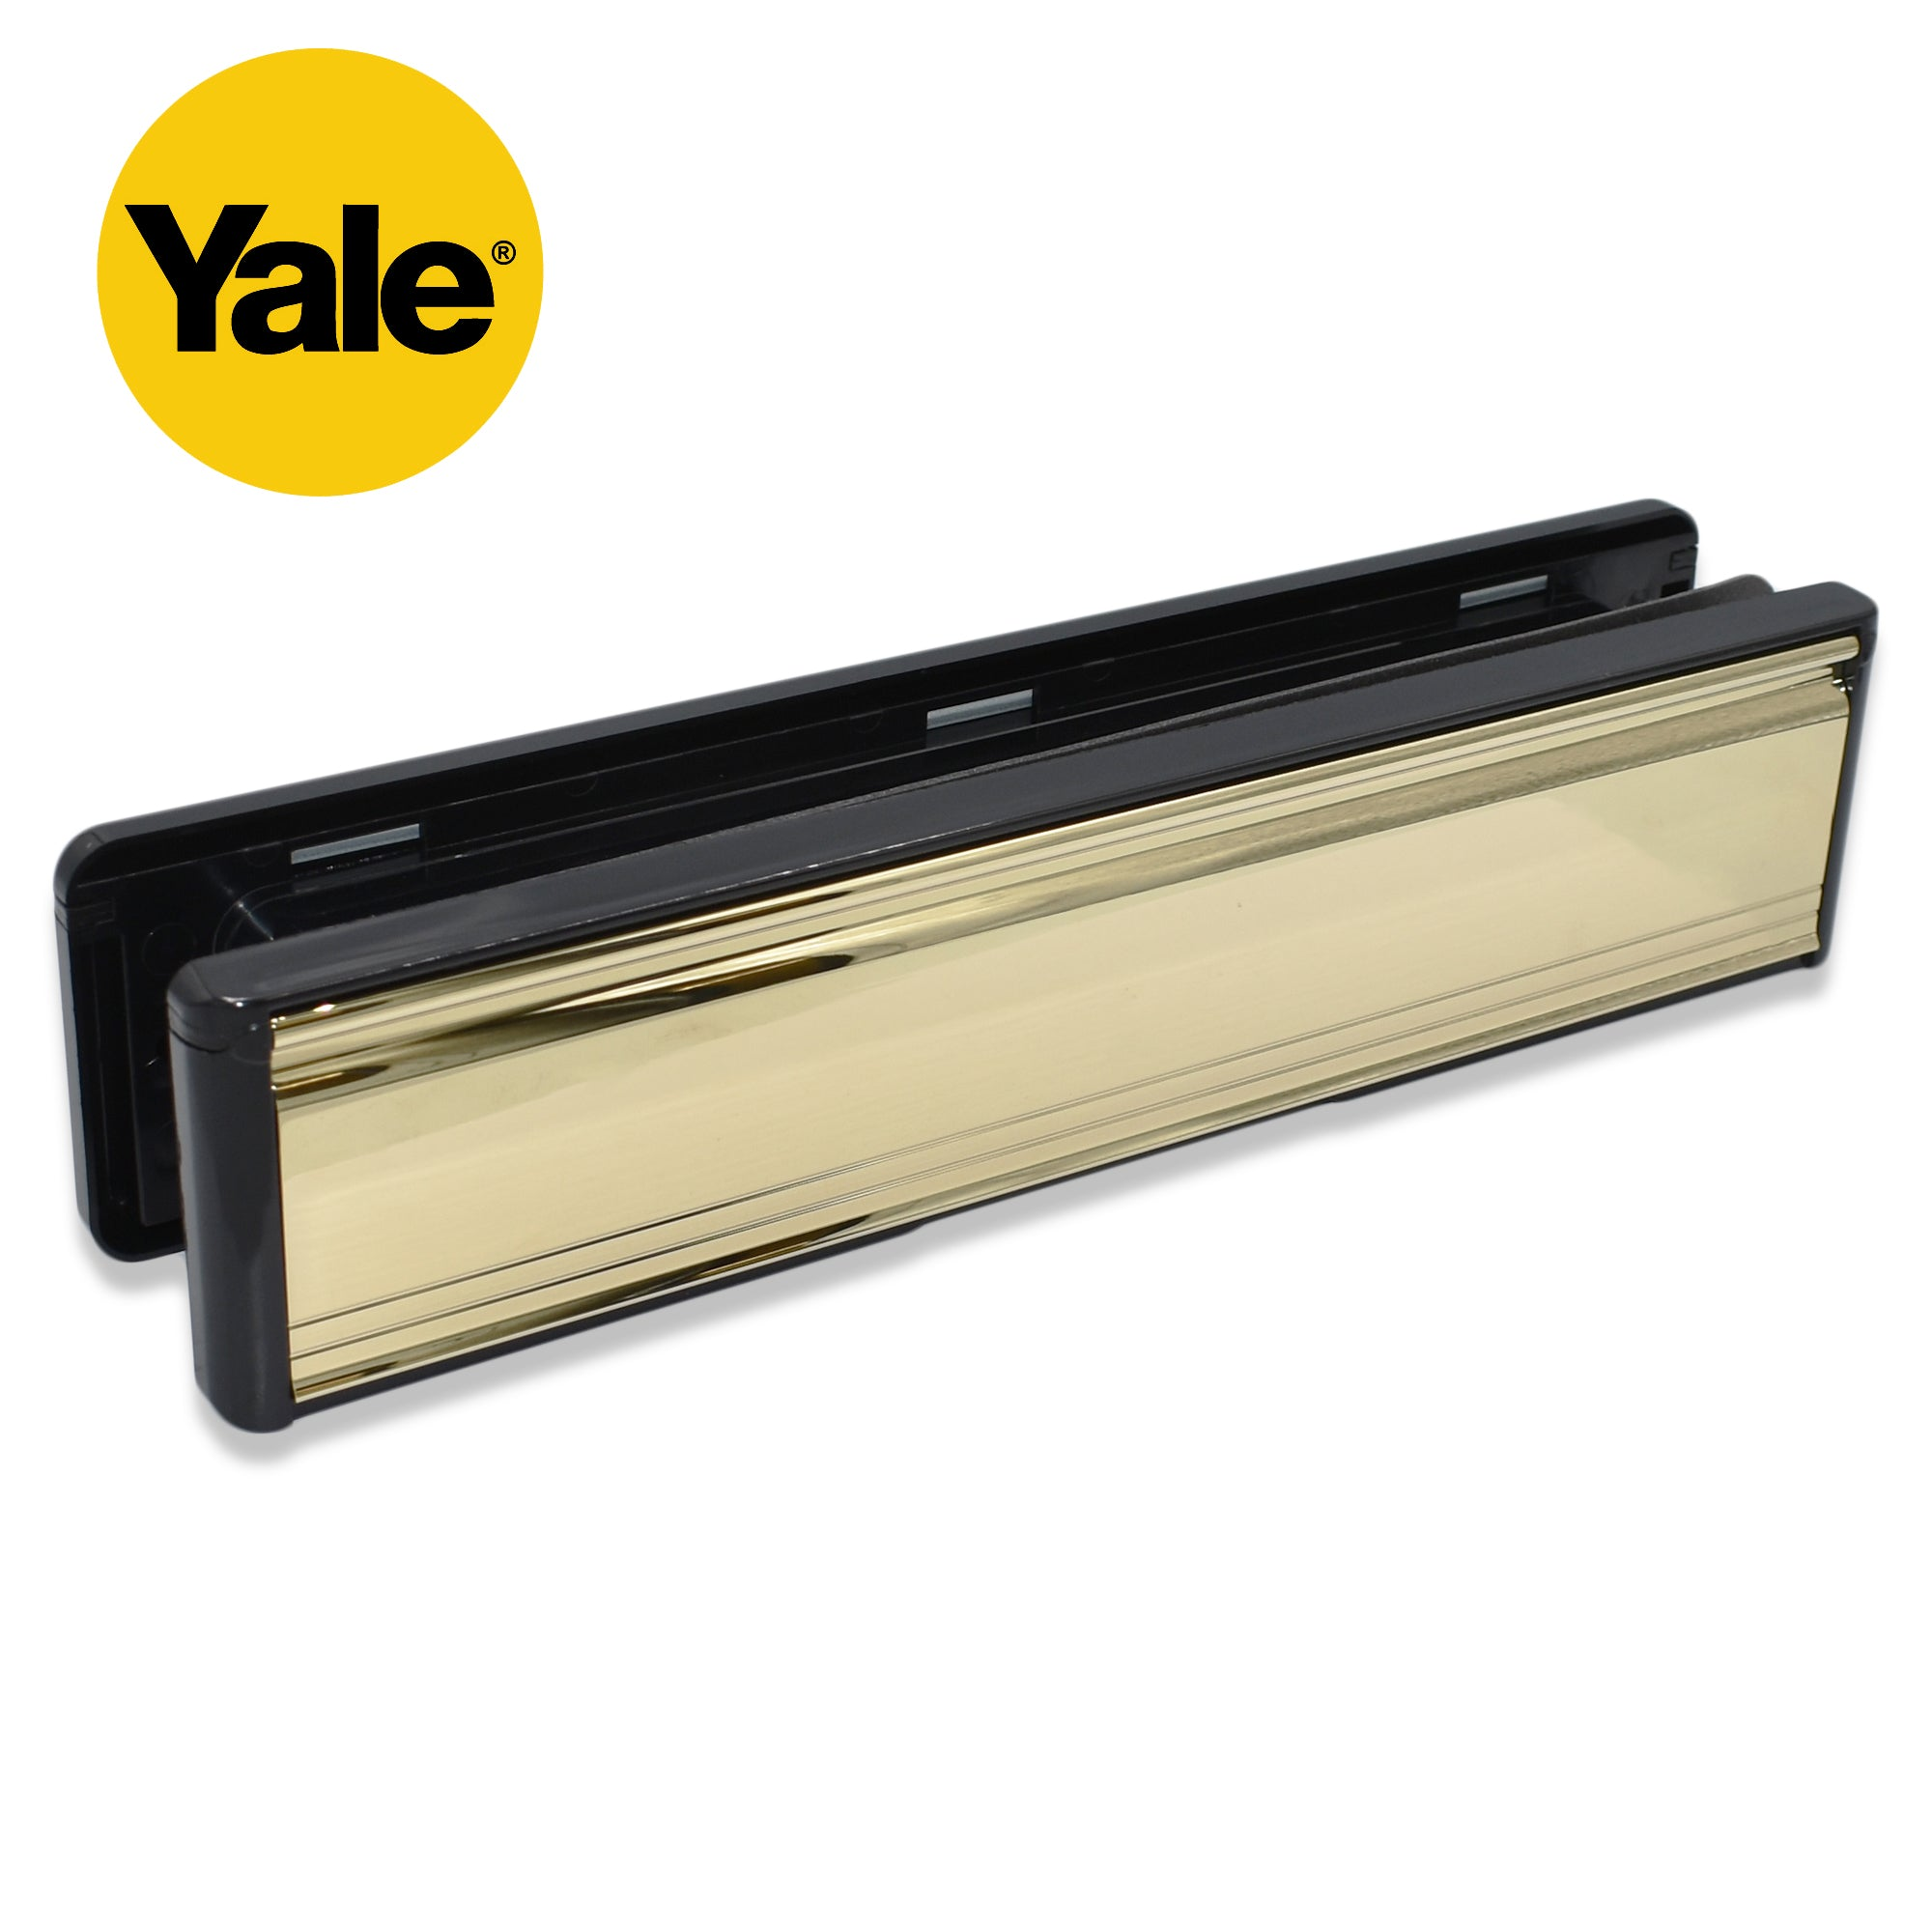 "Yale 12"" LETTERPLATES Brass Chrome Letter Box Cover Plate UPVC Wood Door -  - Yale - UPVCSTORE"